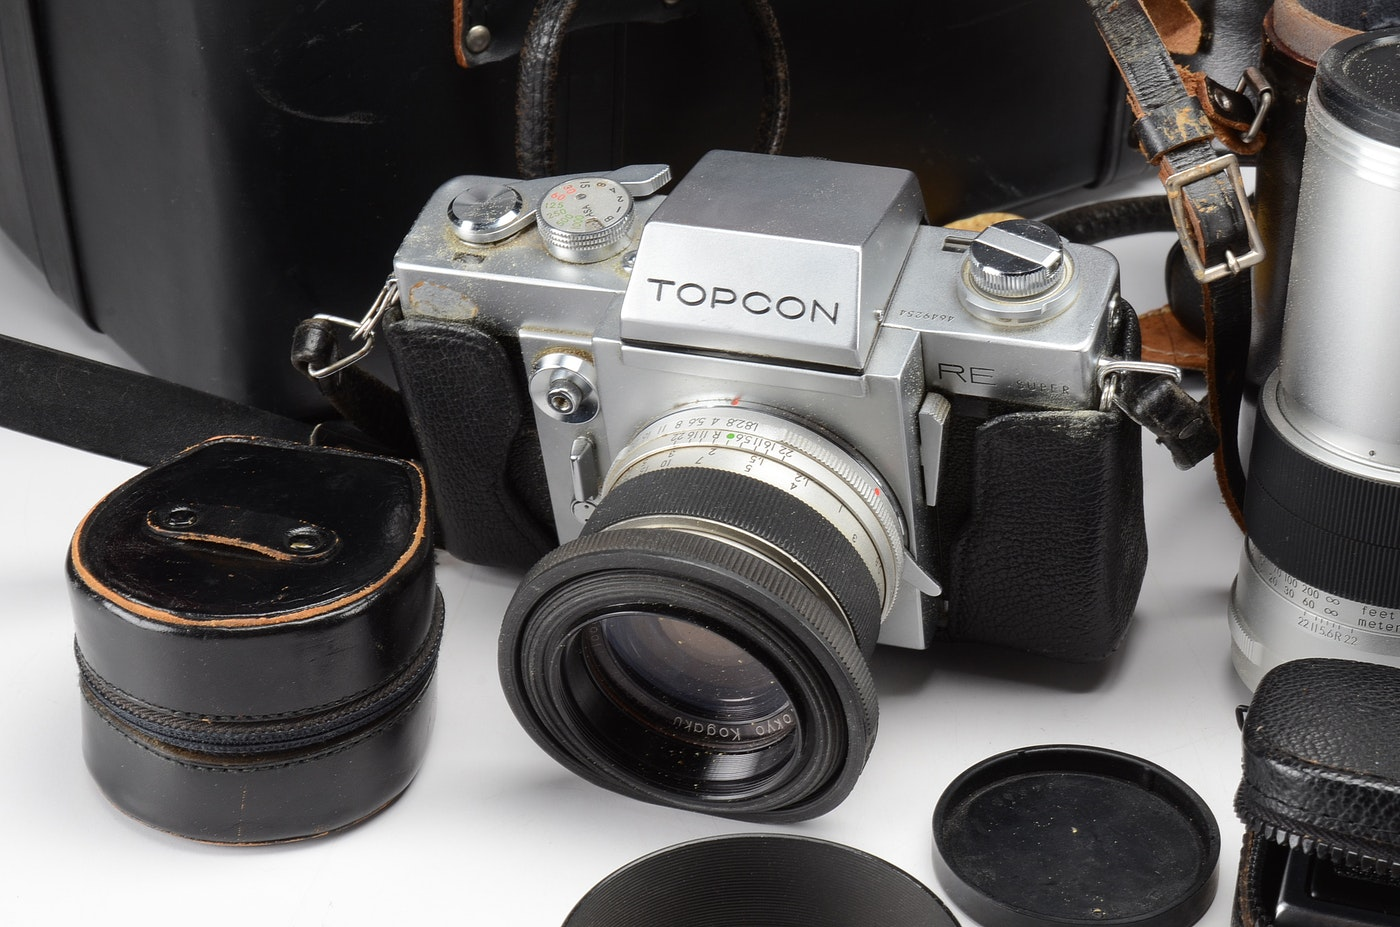 vintage topcon re super camera including accessories ebth. Black Bedroom Furniture Sets. Home Design Ideas